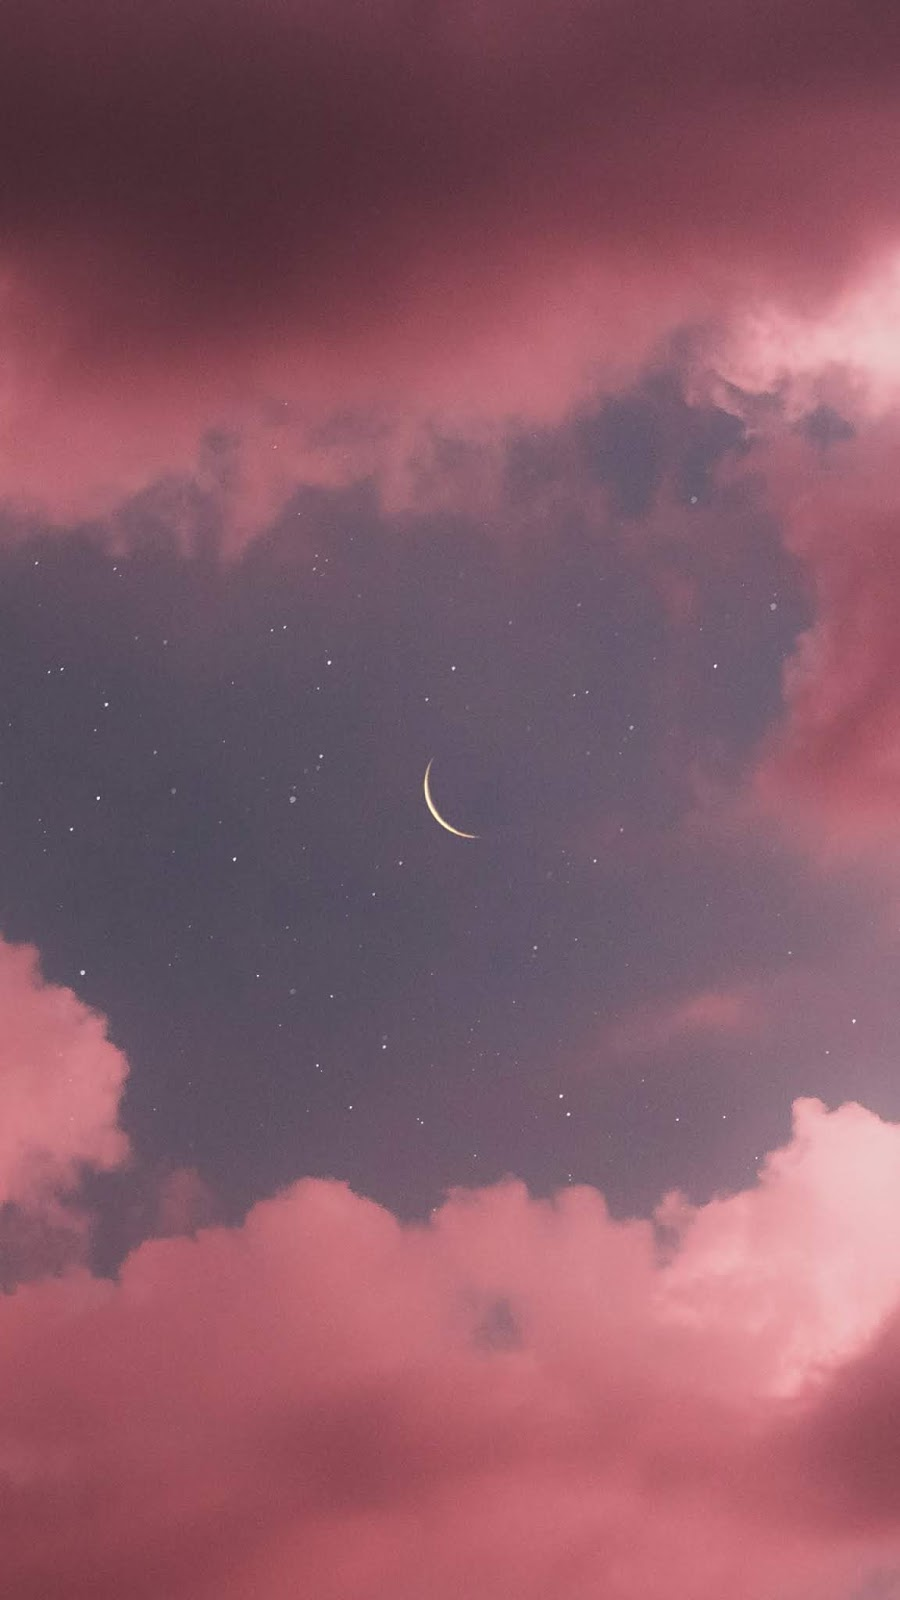 Crescent moon in the pink sky